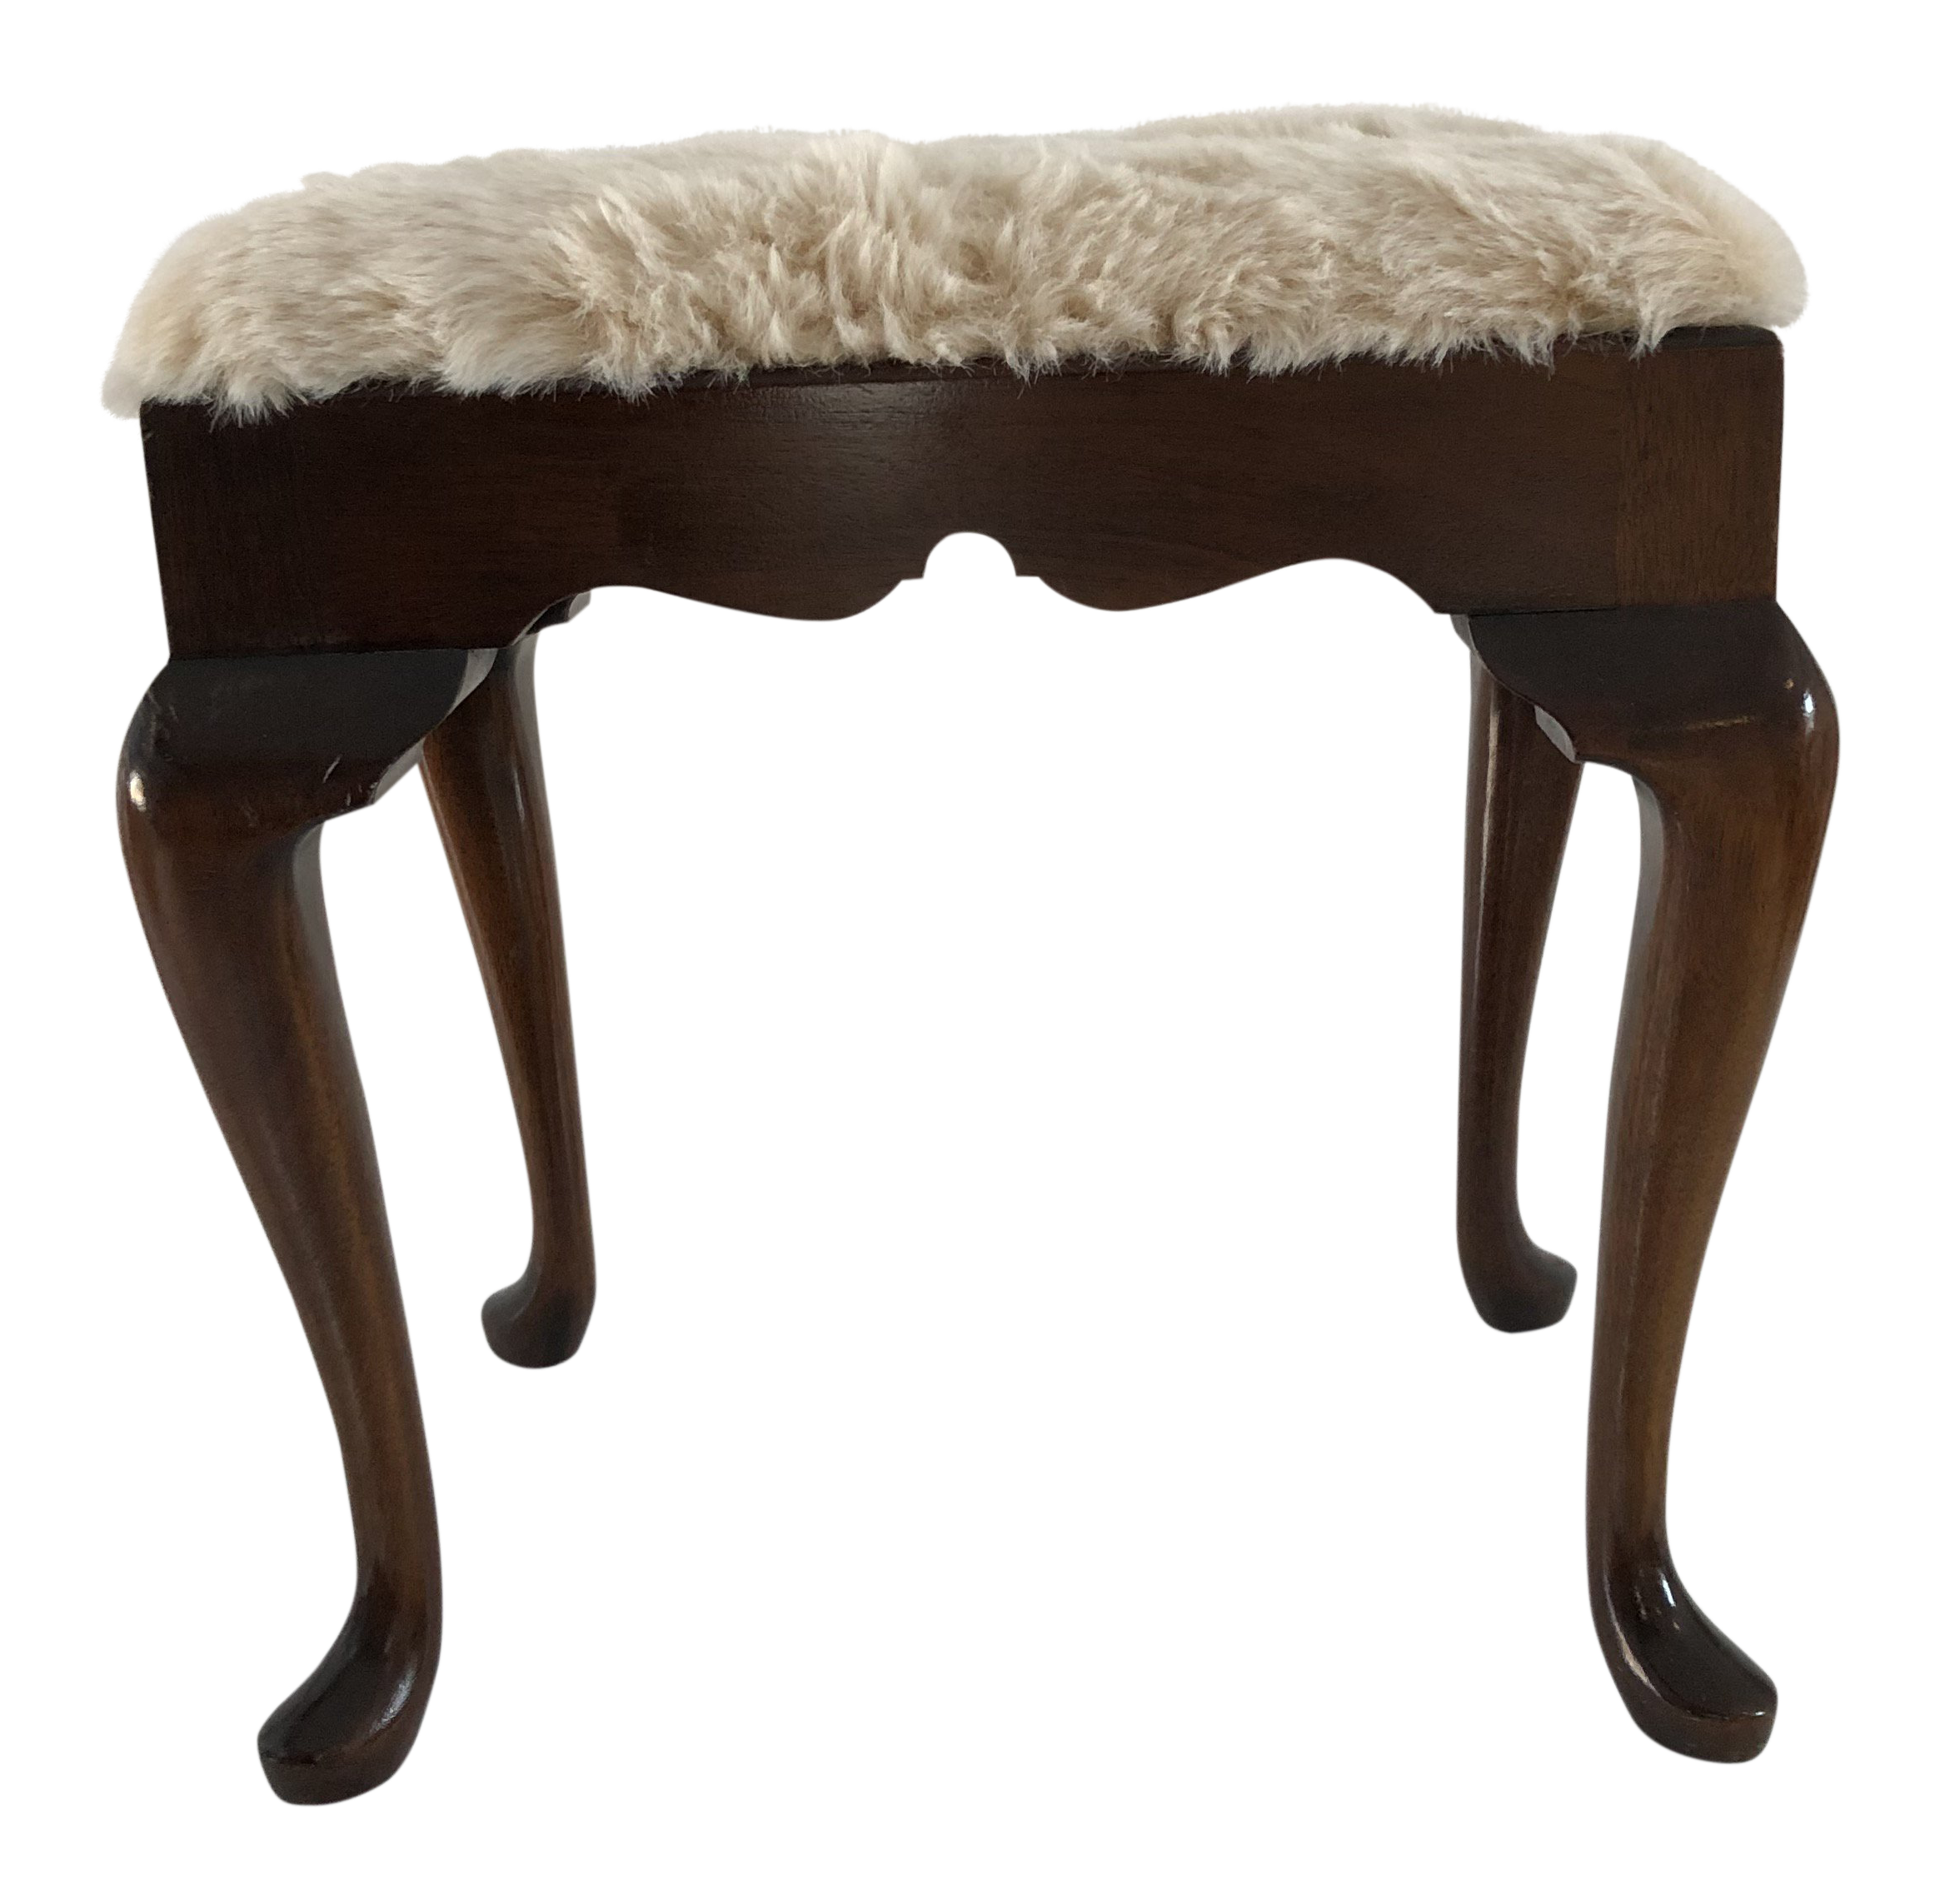 1980s Vintage Mahogany Queen Anne Style Faux Fur Bench Chairish